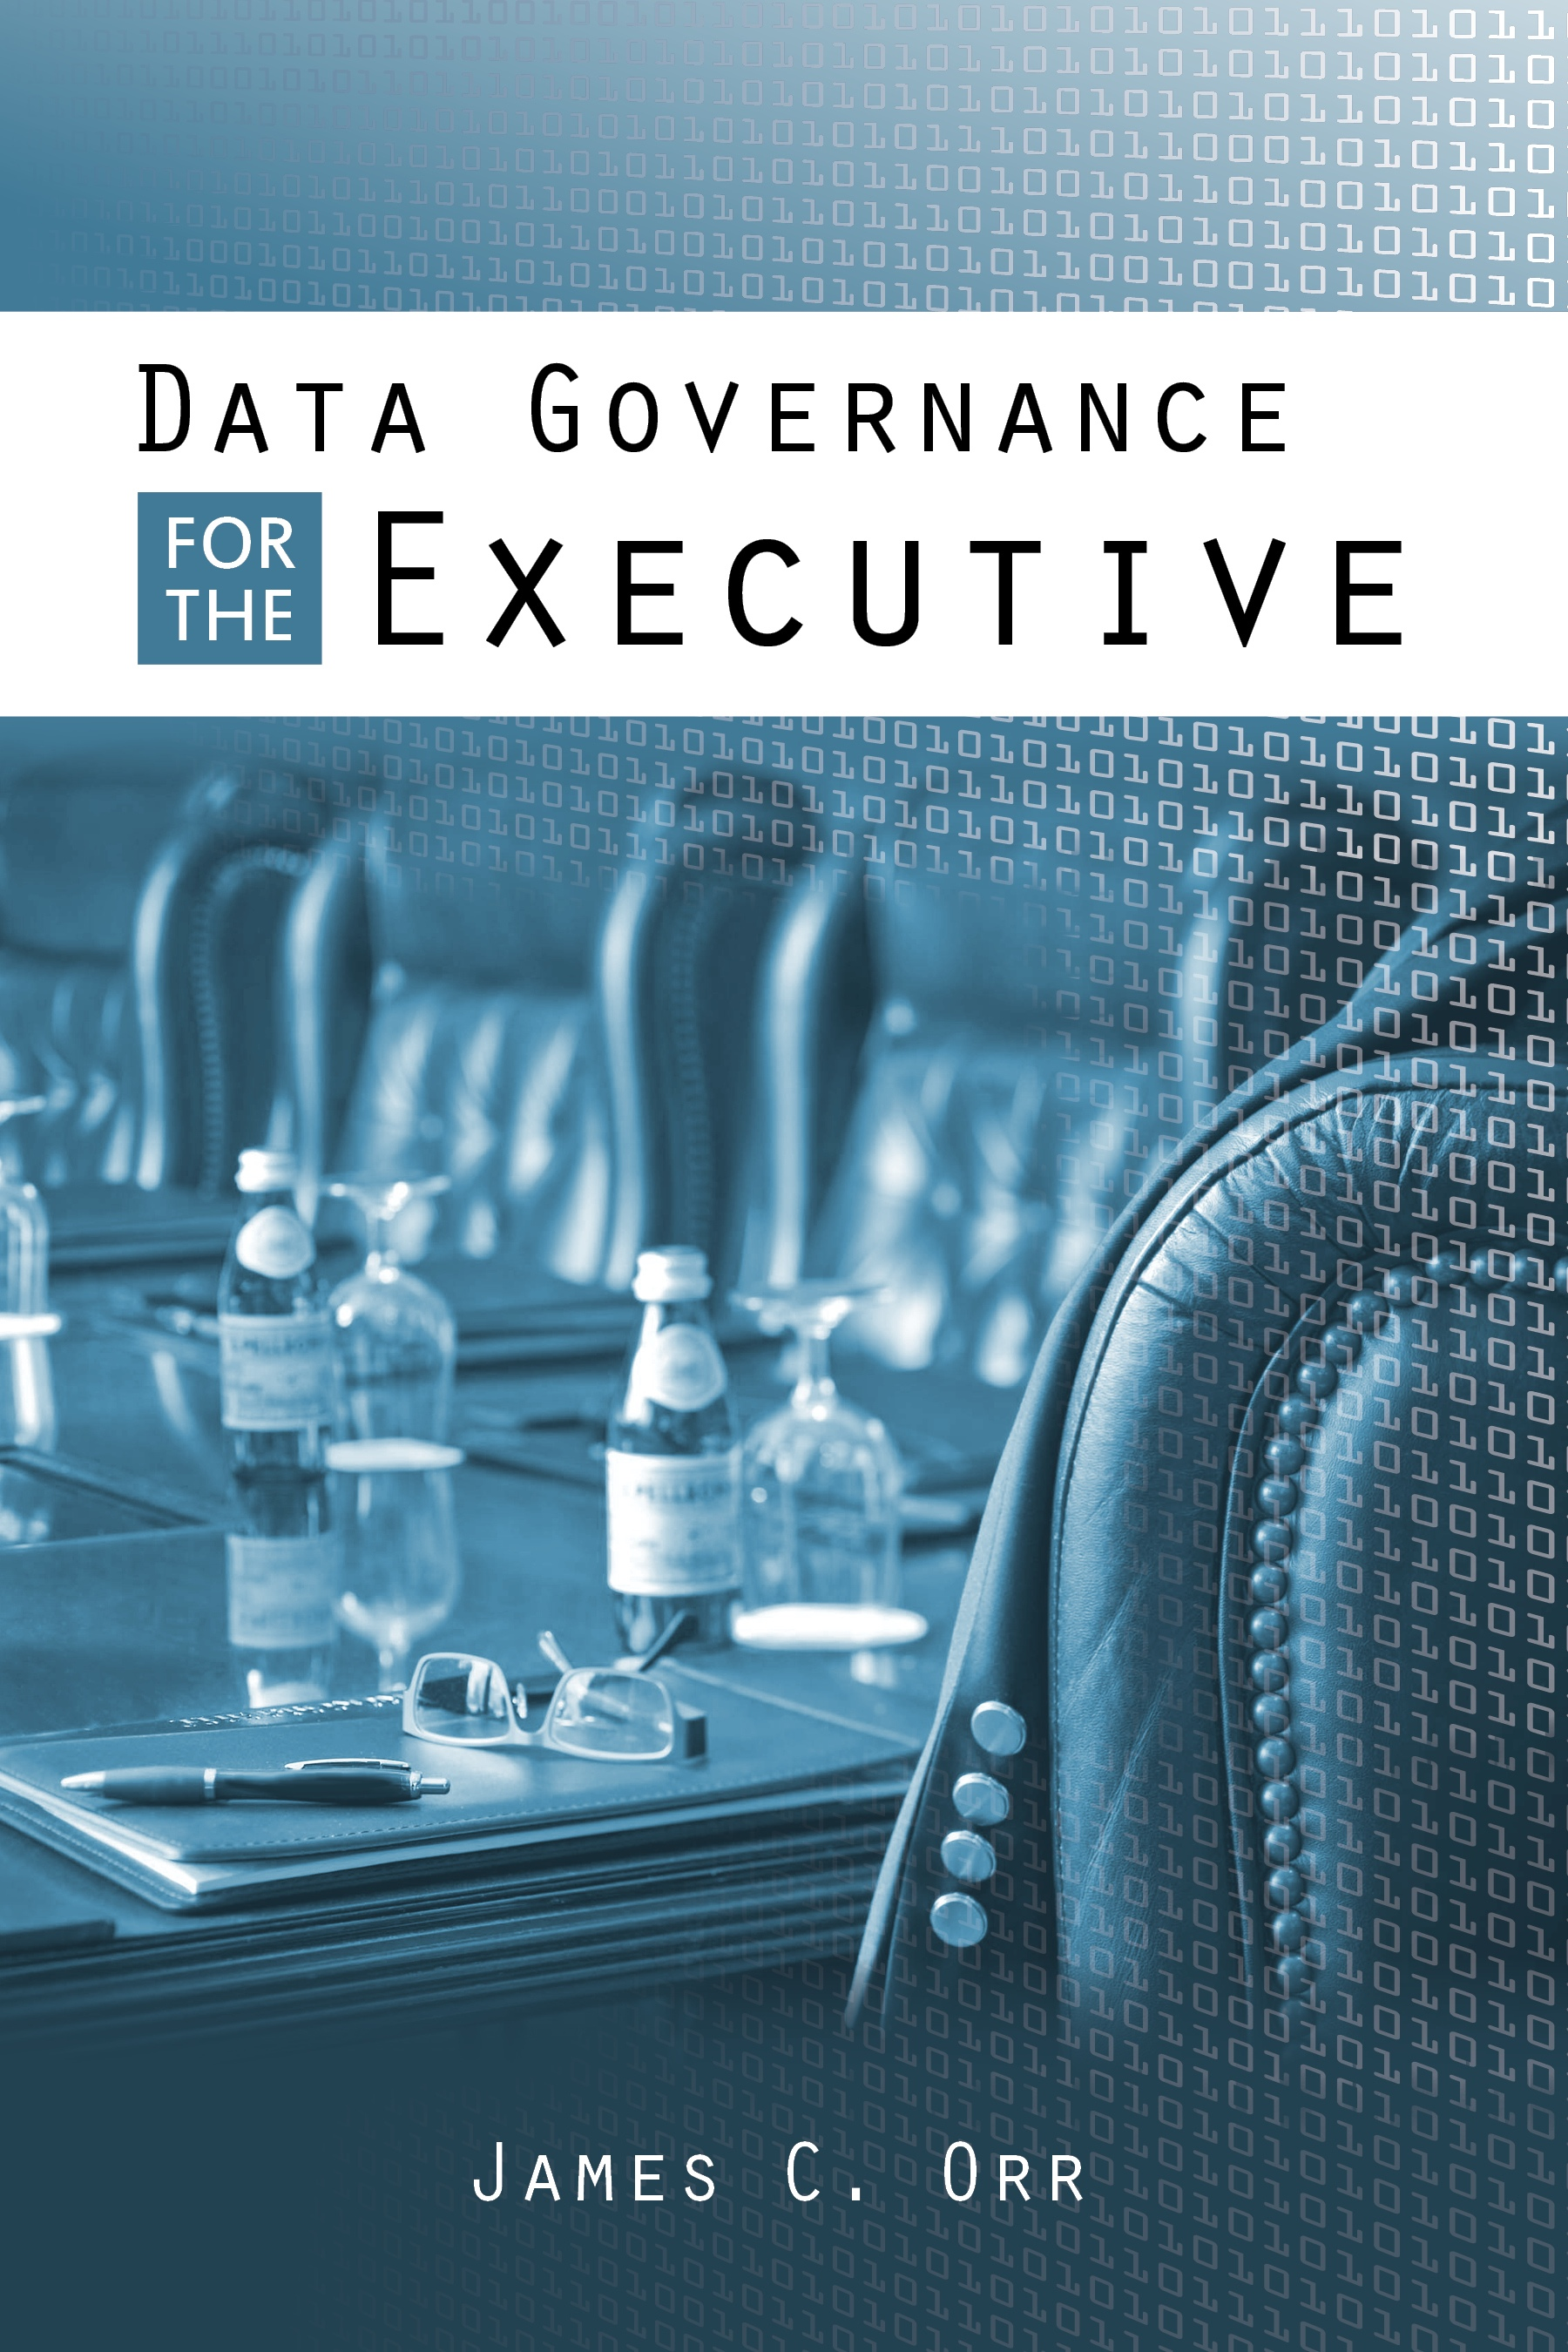 Jim Orr provides a data governance text that is at last geared towards the C-level and senior management - Data Governance for the Executive